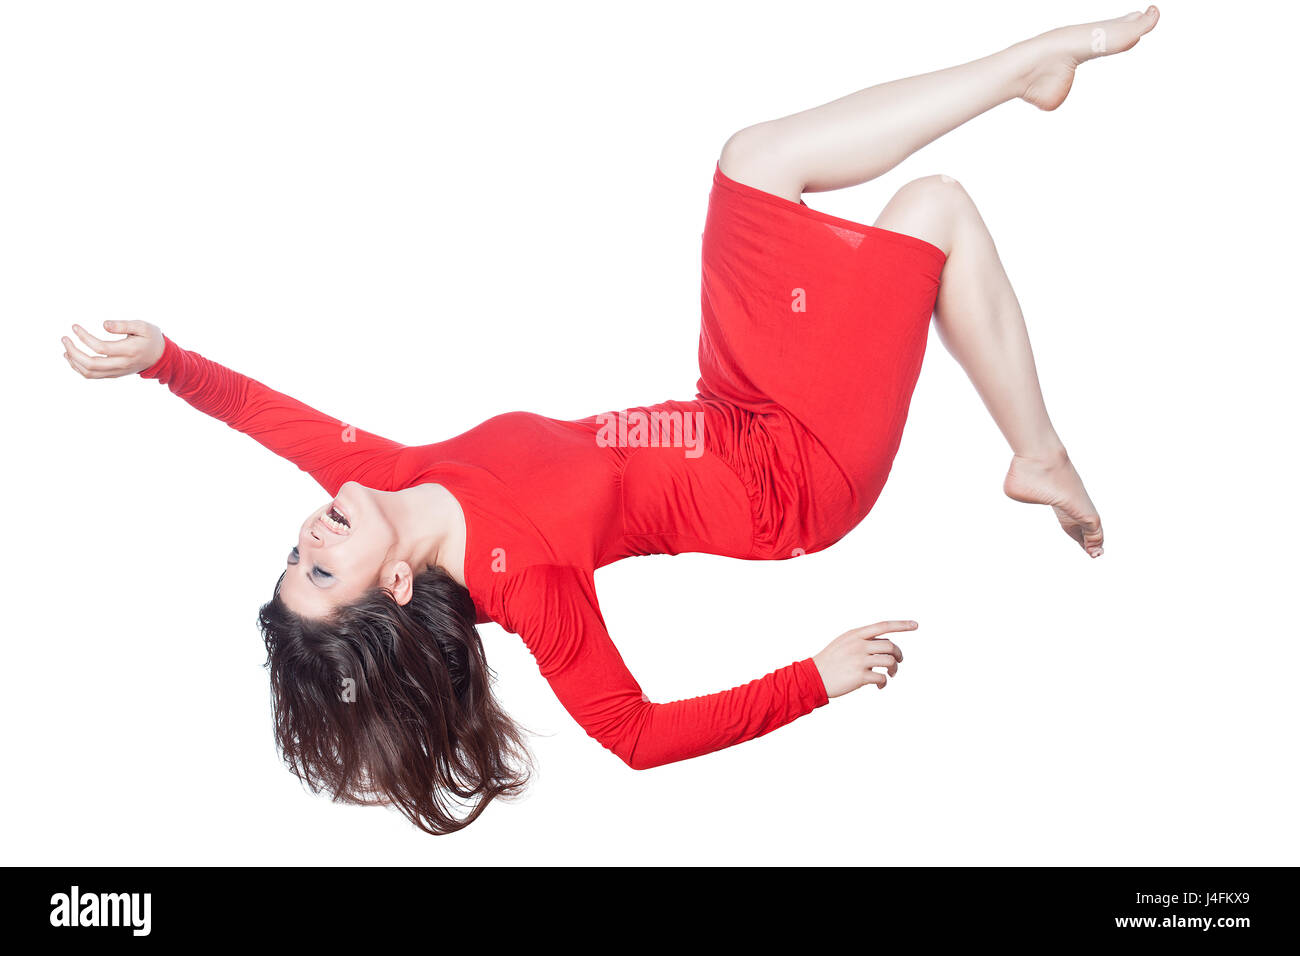 Woman in red dress floating in the air falling on a white background. - Stock Image